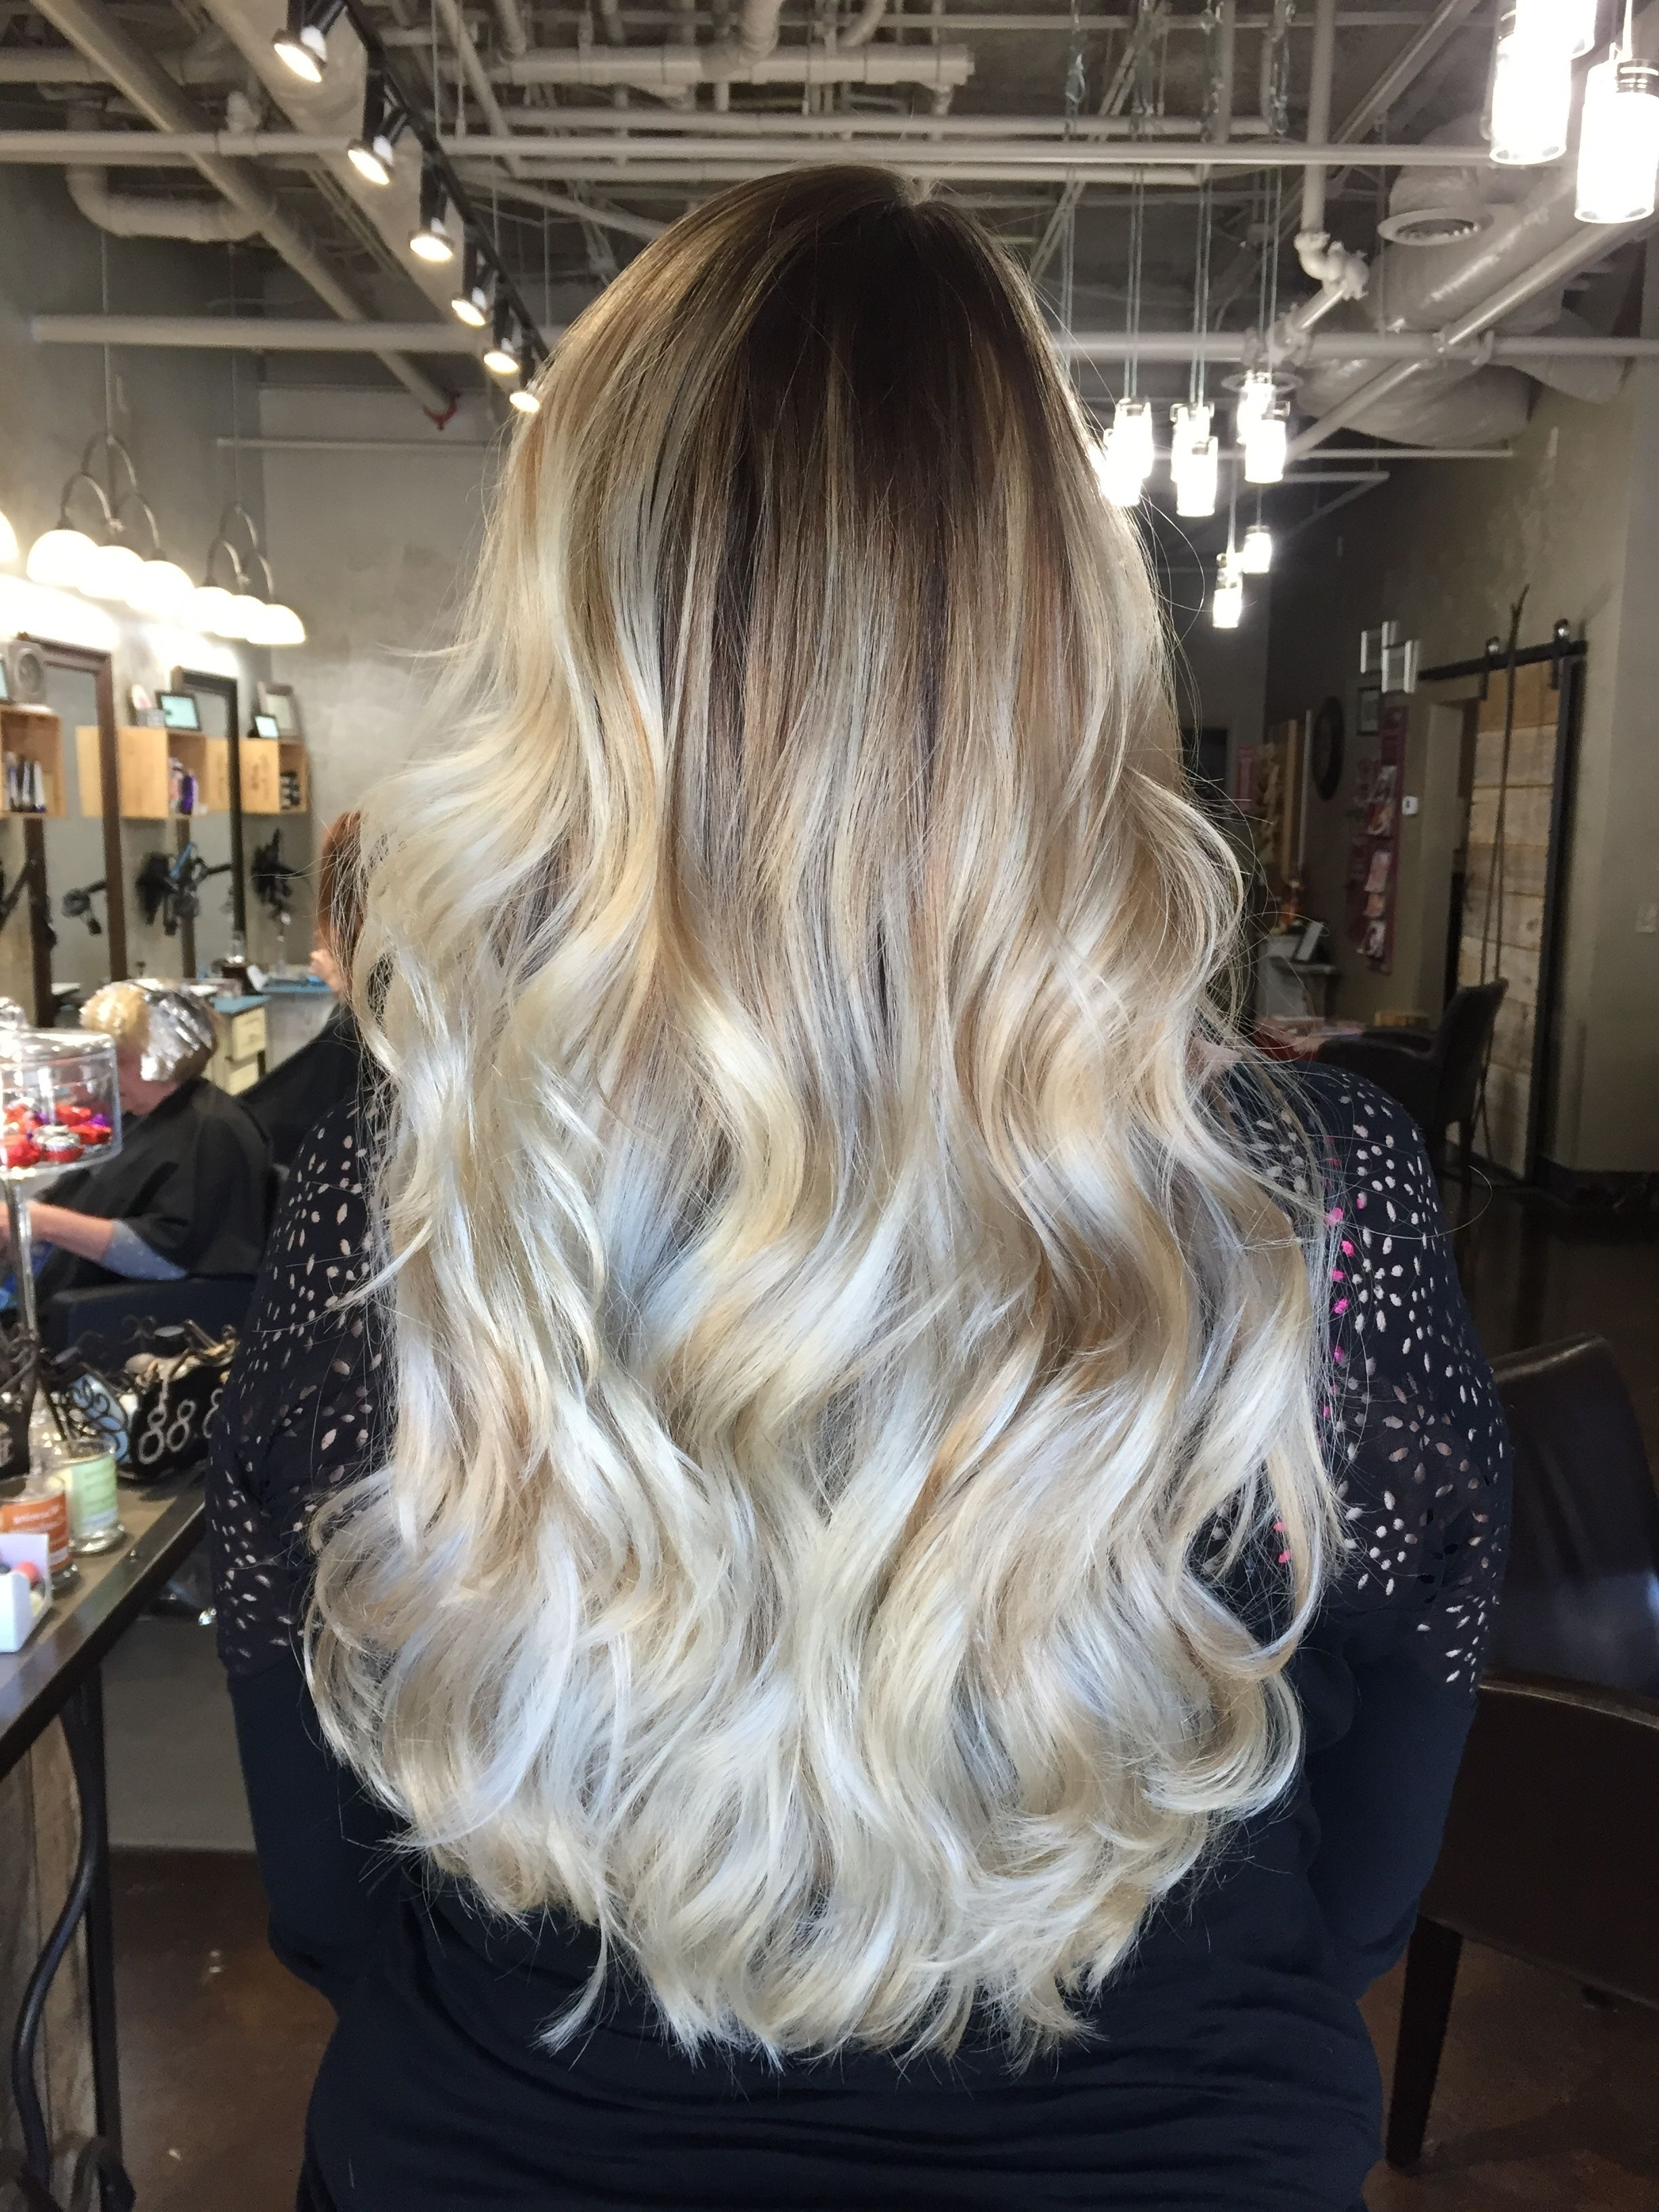 Widely Used Icy Ombre Waves Blonde Hairstyles Within Icy Blonde Ombré Balayagelindsay Banks! #hairbylindsaybanks (View 20 of 20)